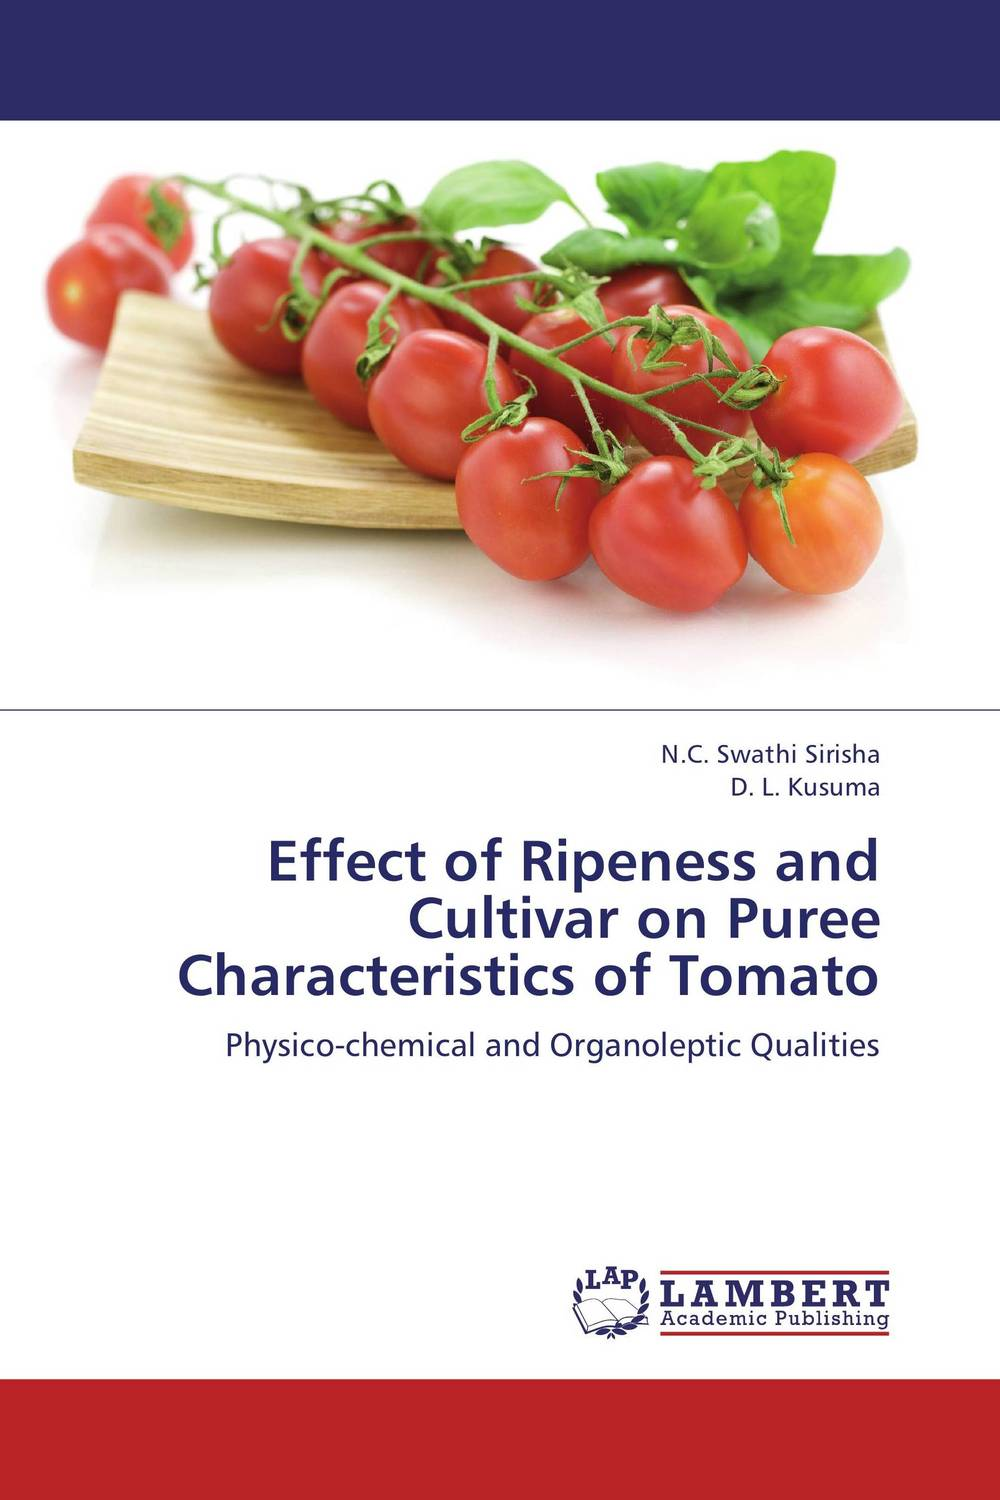 Effect of Ripeness and Cultivar on Puree Characteristics of Tomato member